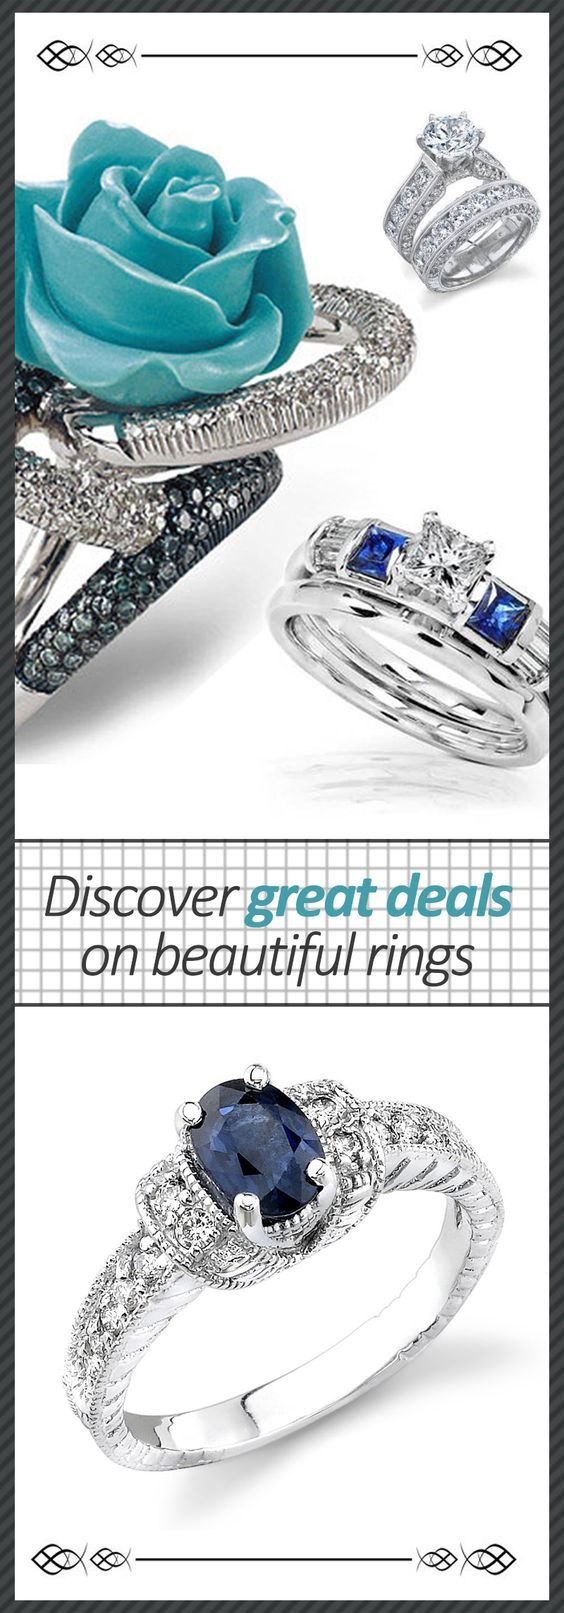 A collection of beautiful rings with great deals at Tophatter. You will find rings that would take your breath away. Download the app & save up to 80% on jewelry you love!